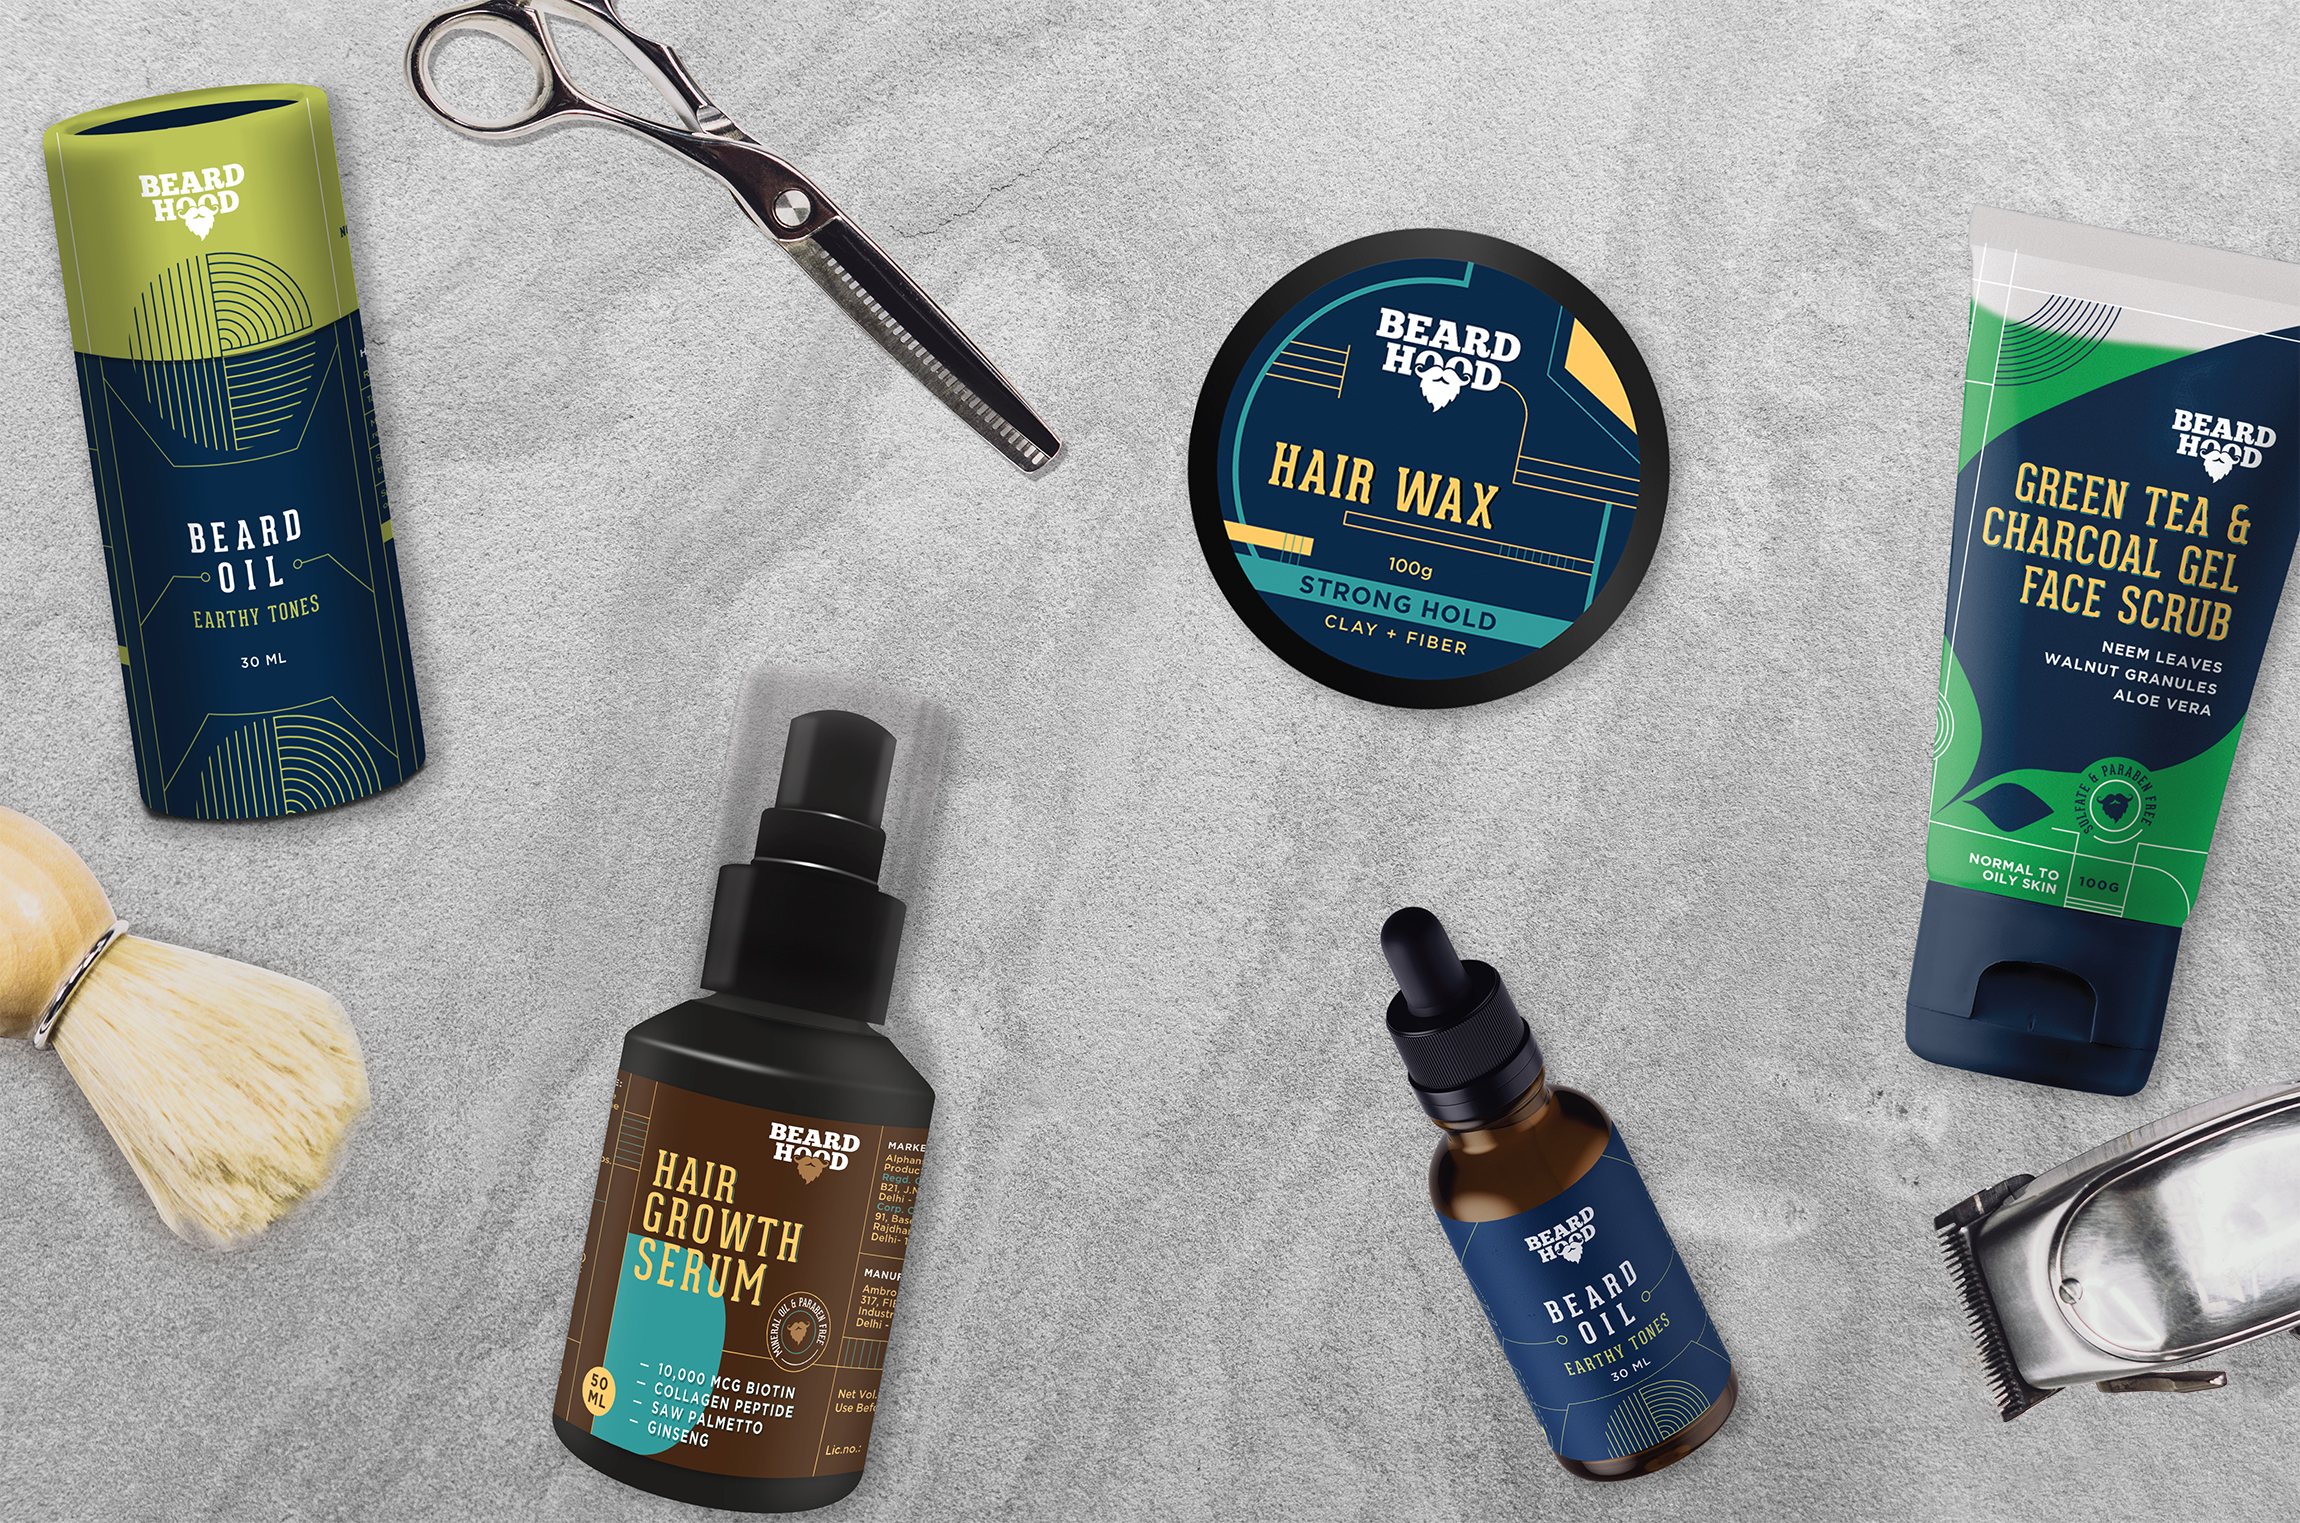 Packaging Design for Beard Hood, a Men's Personal Care Brand